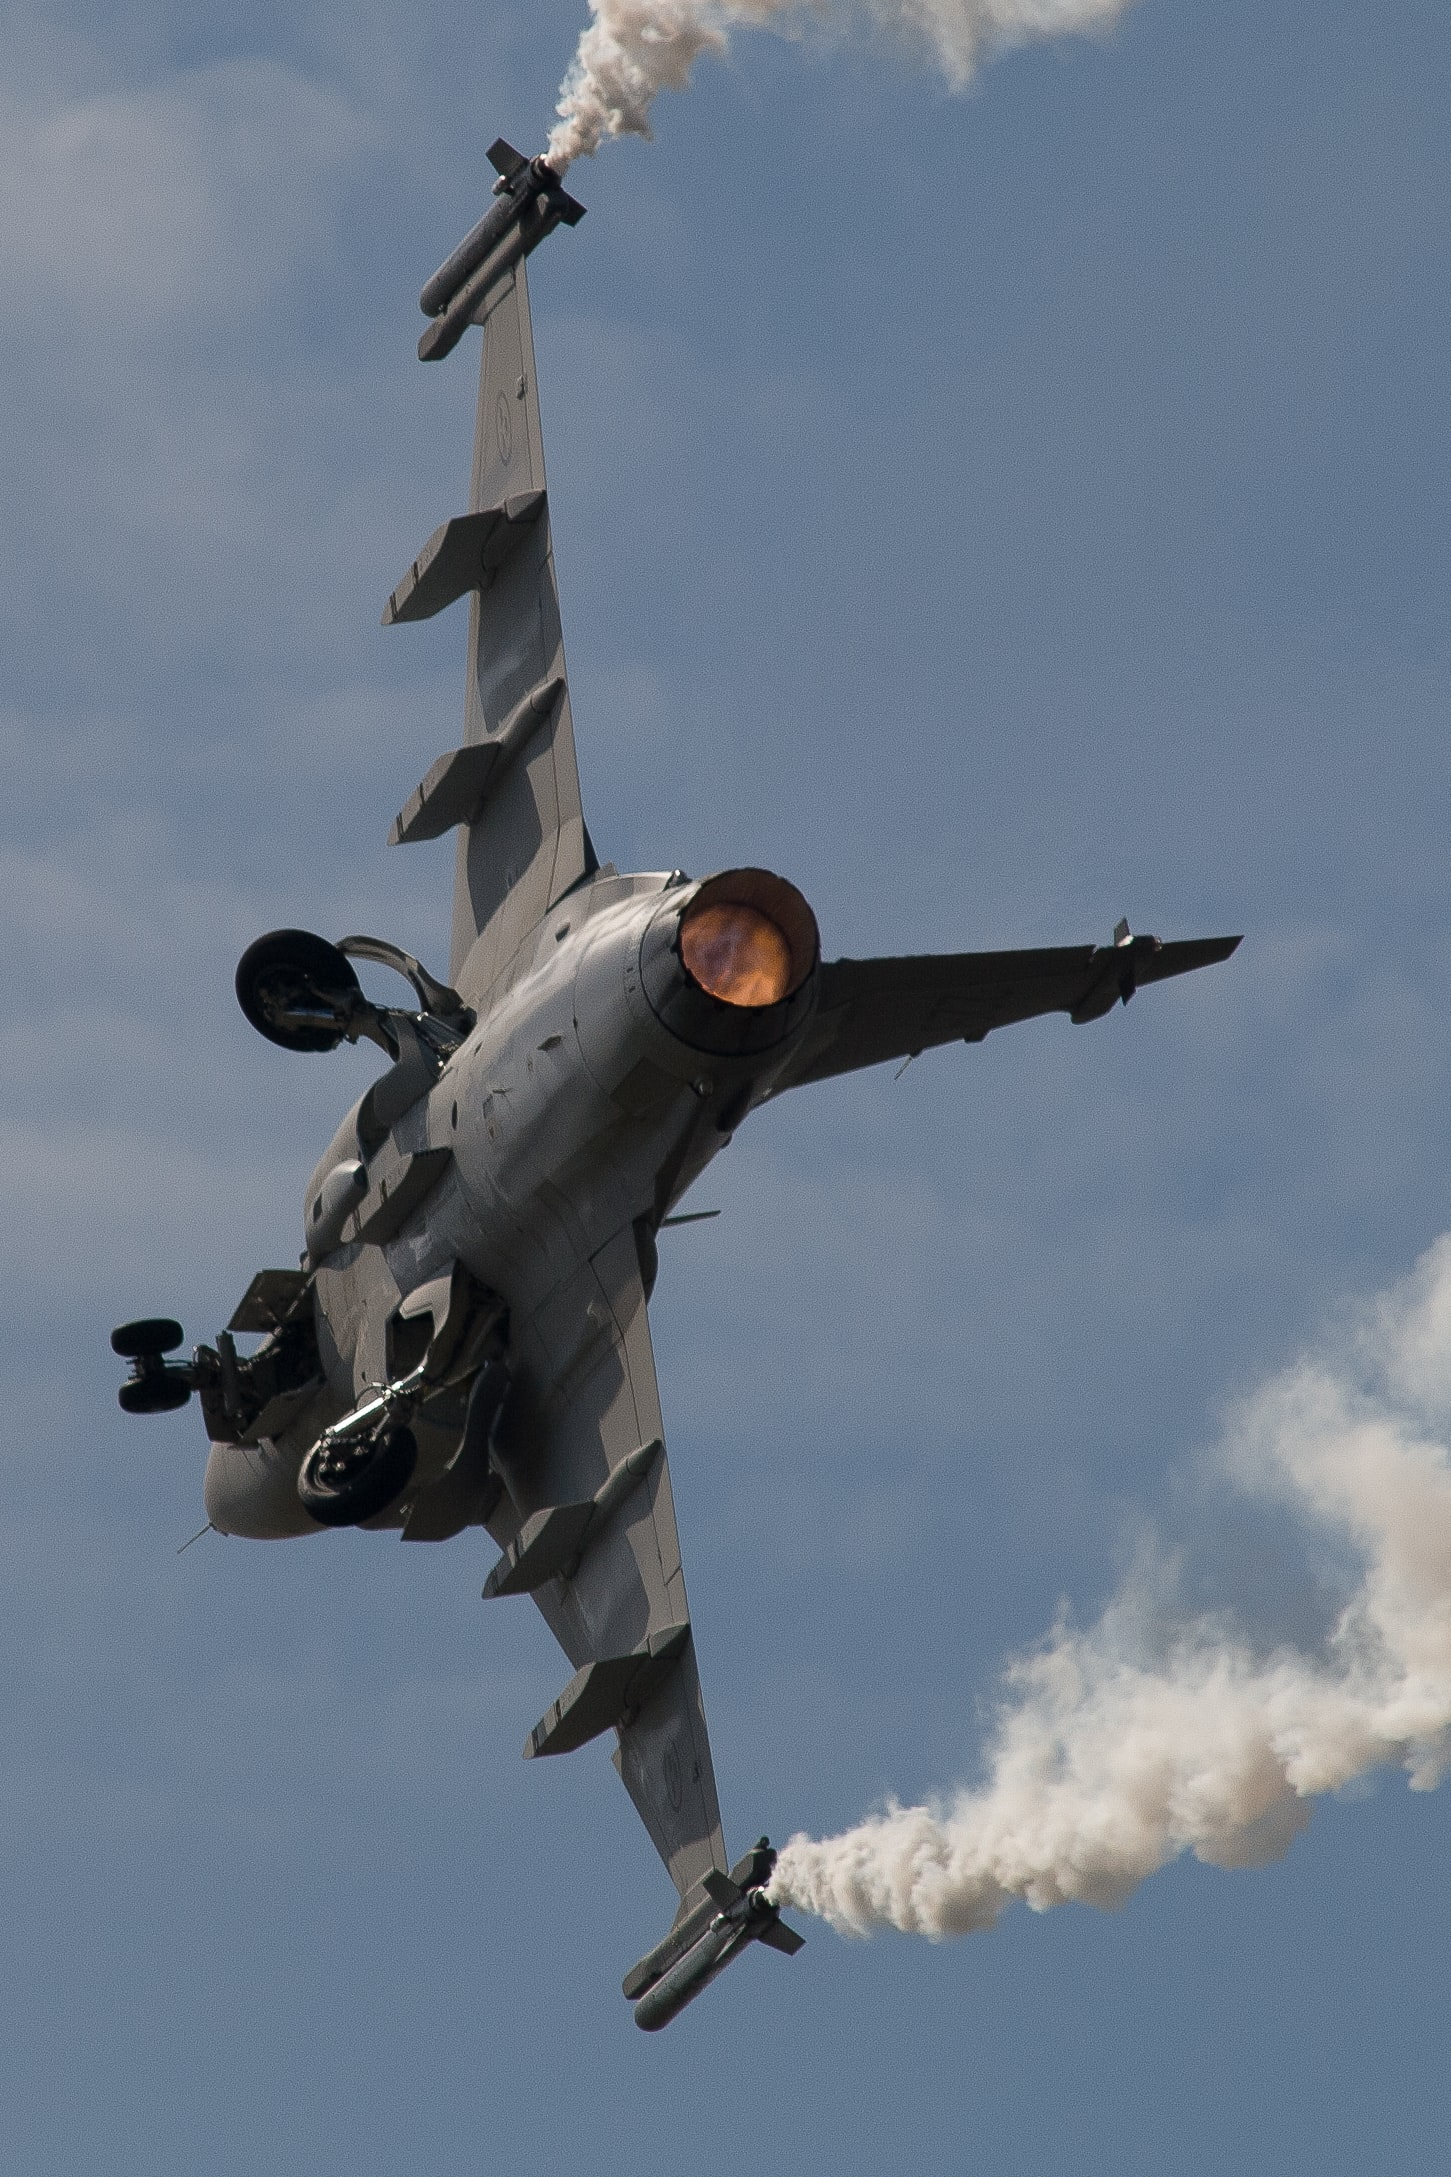 closeup photo of fighter jet during daytime